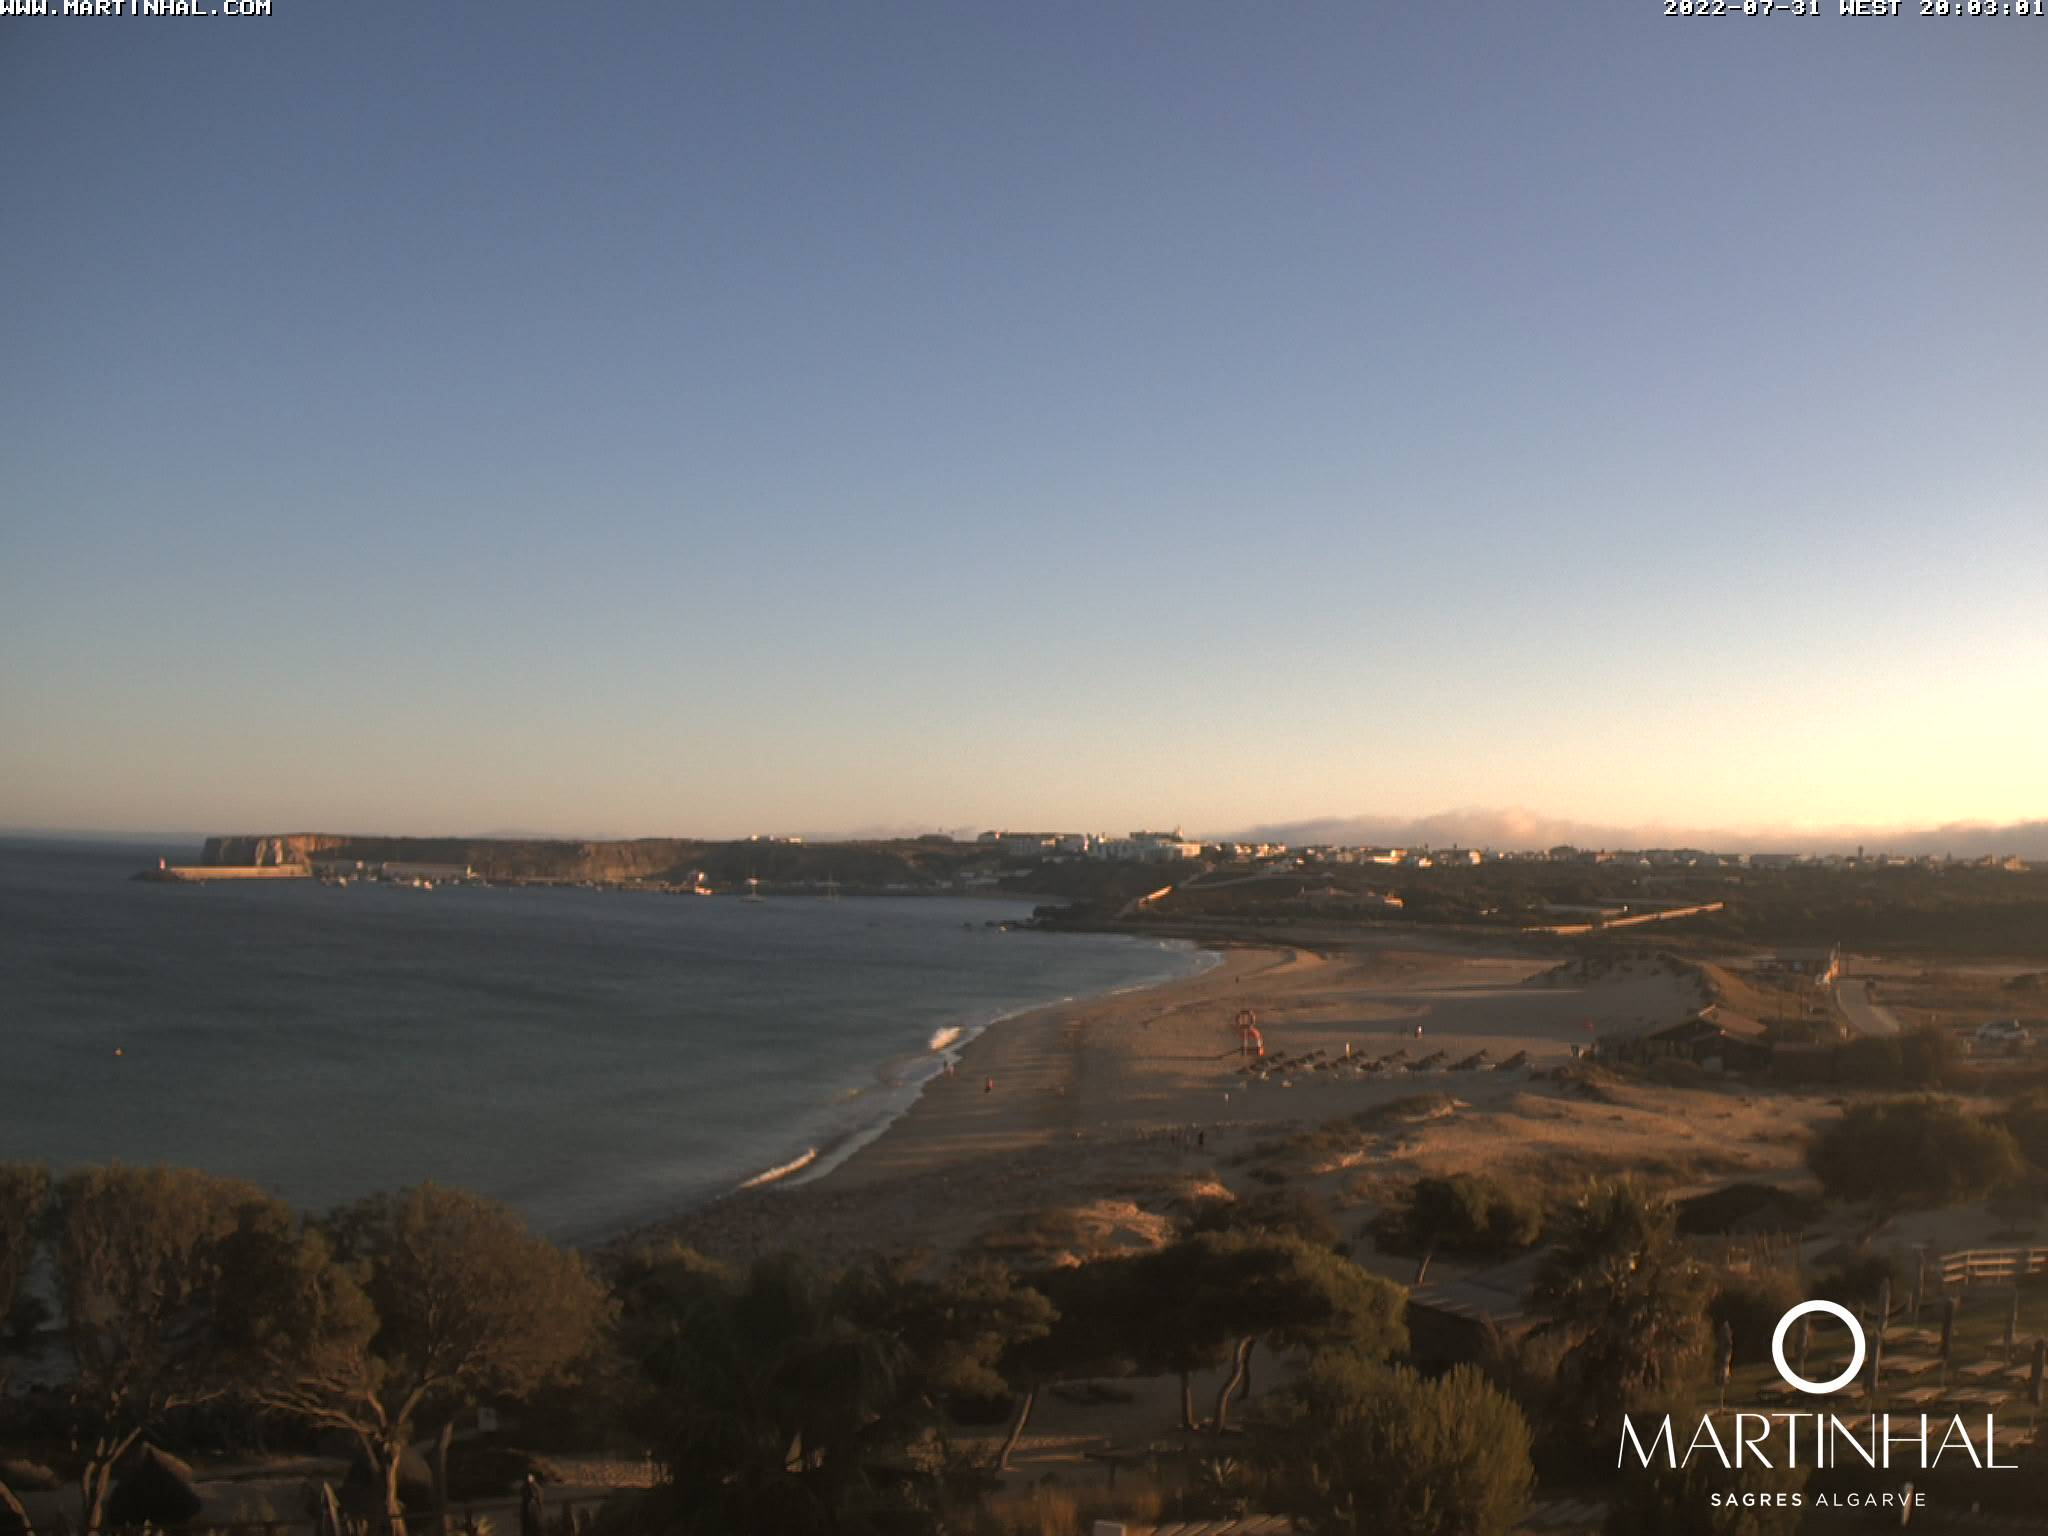 Webcam Sagres Algarve Portugal 8pm